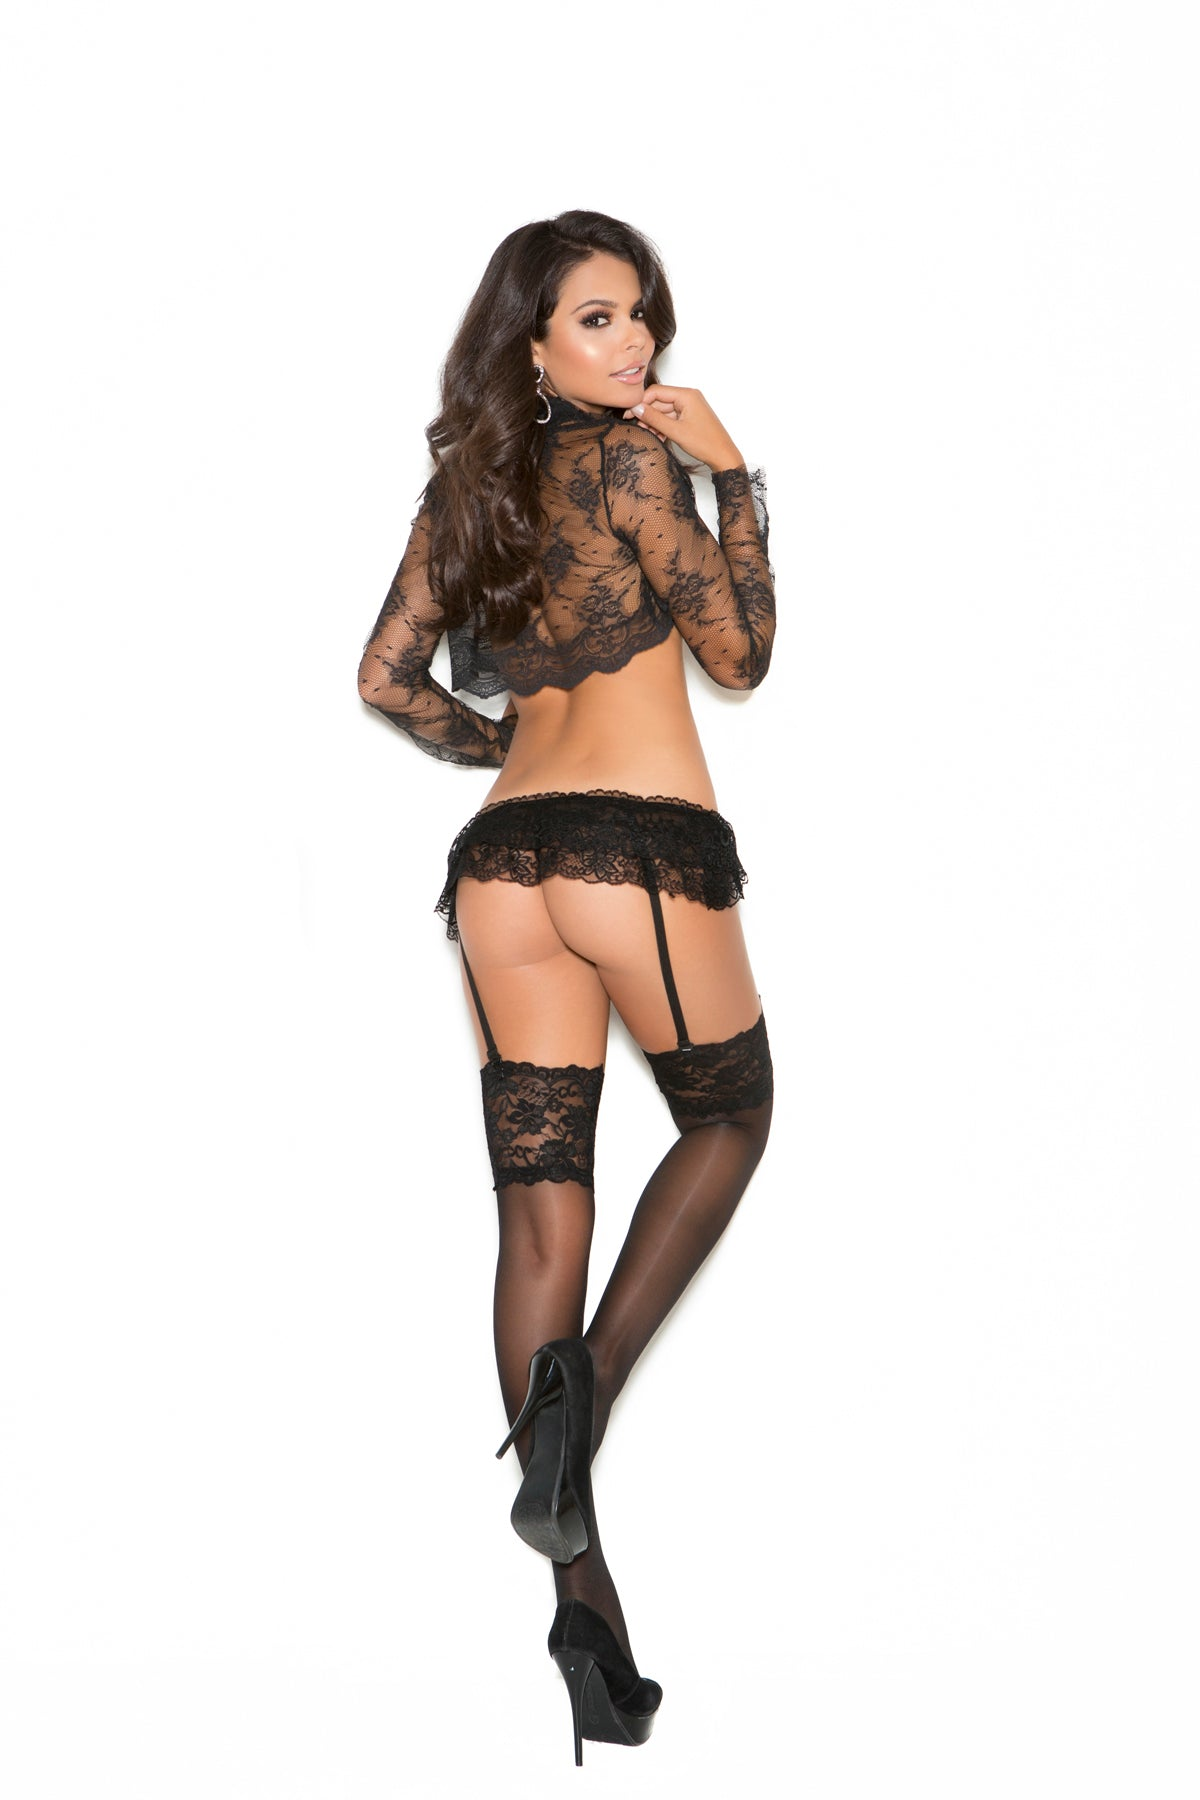 SHEER THIGH HI W/ 5 INCH TOP